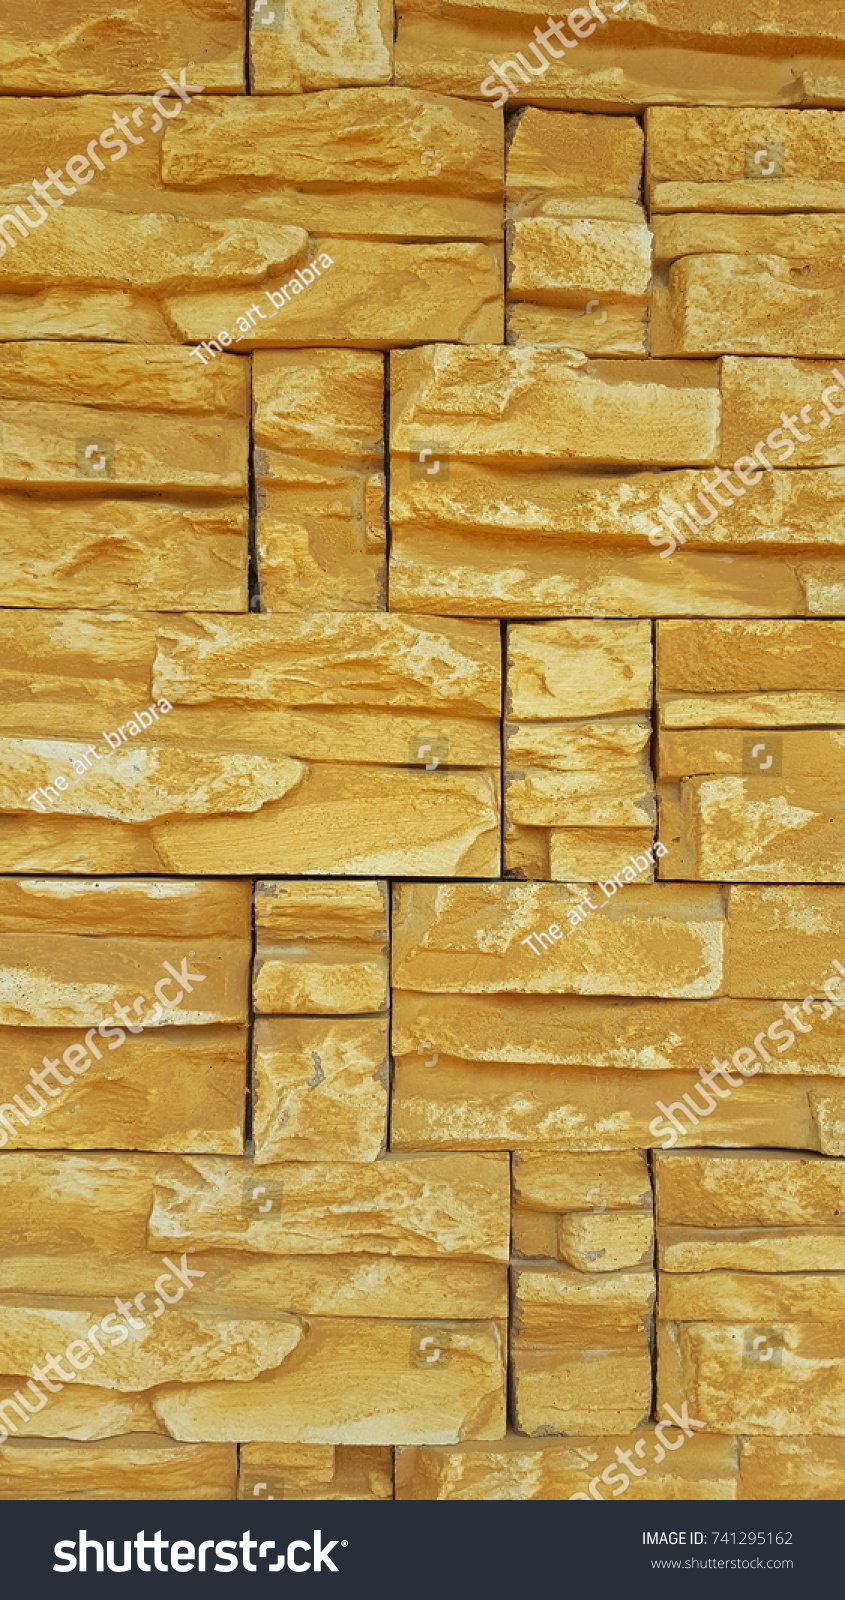 Yellow Stone Mimics Natural Stone Precast Stone Stock Photo (Royalty ...